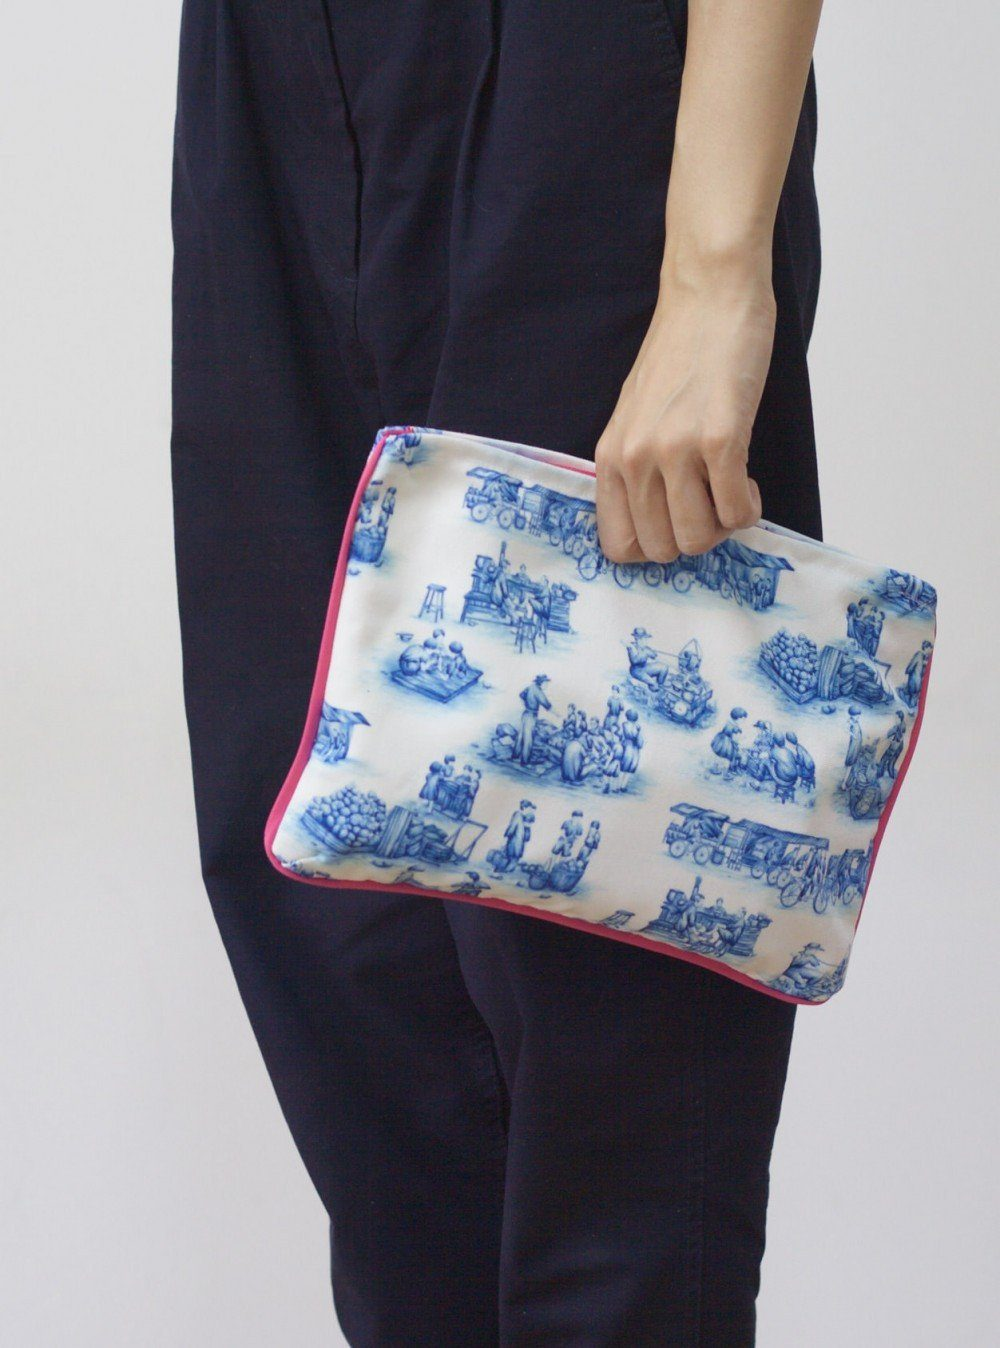 TWWW Trades Pouch - Local Pouches - The Way We Were - Naiise